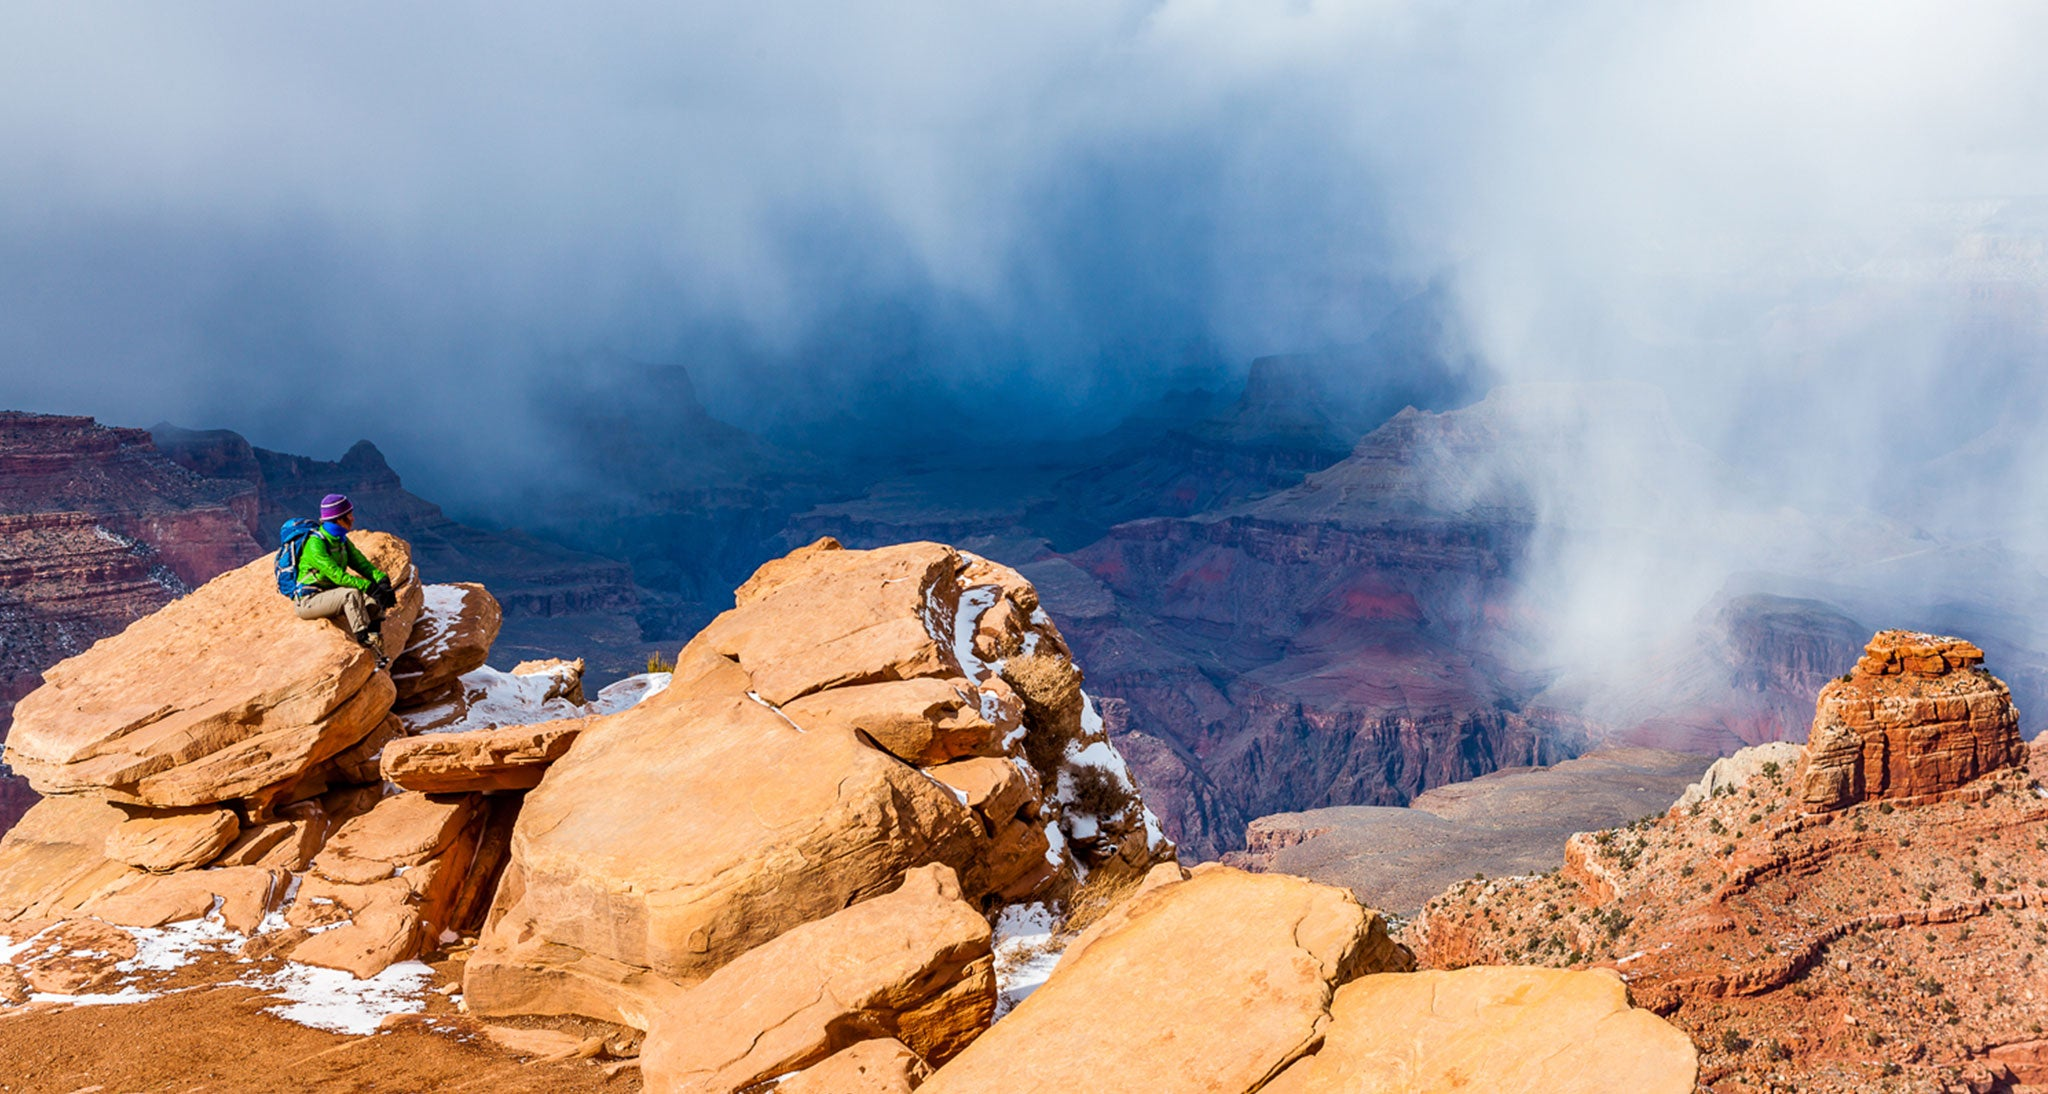 Cumulus clouds develop in the winter too as seen here over the Grand Canyon on the South Kaibab Trail.  This large cell is producing snowshoers seen by the white ragged shafts.  The cellular nature of the cloud base and the fact that snow started and stopped pretty abruptly several times that day is characteristic of cumulus clouds and showery precipitation.